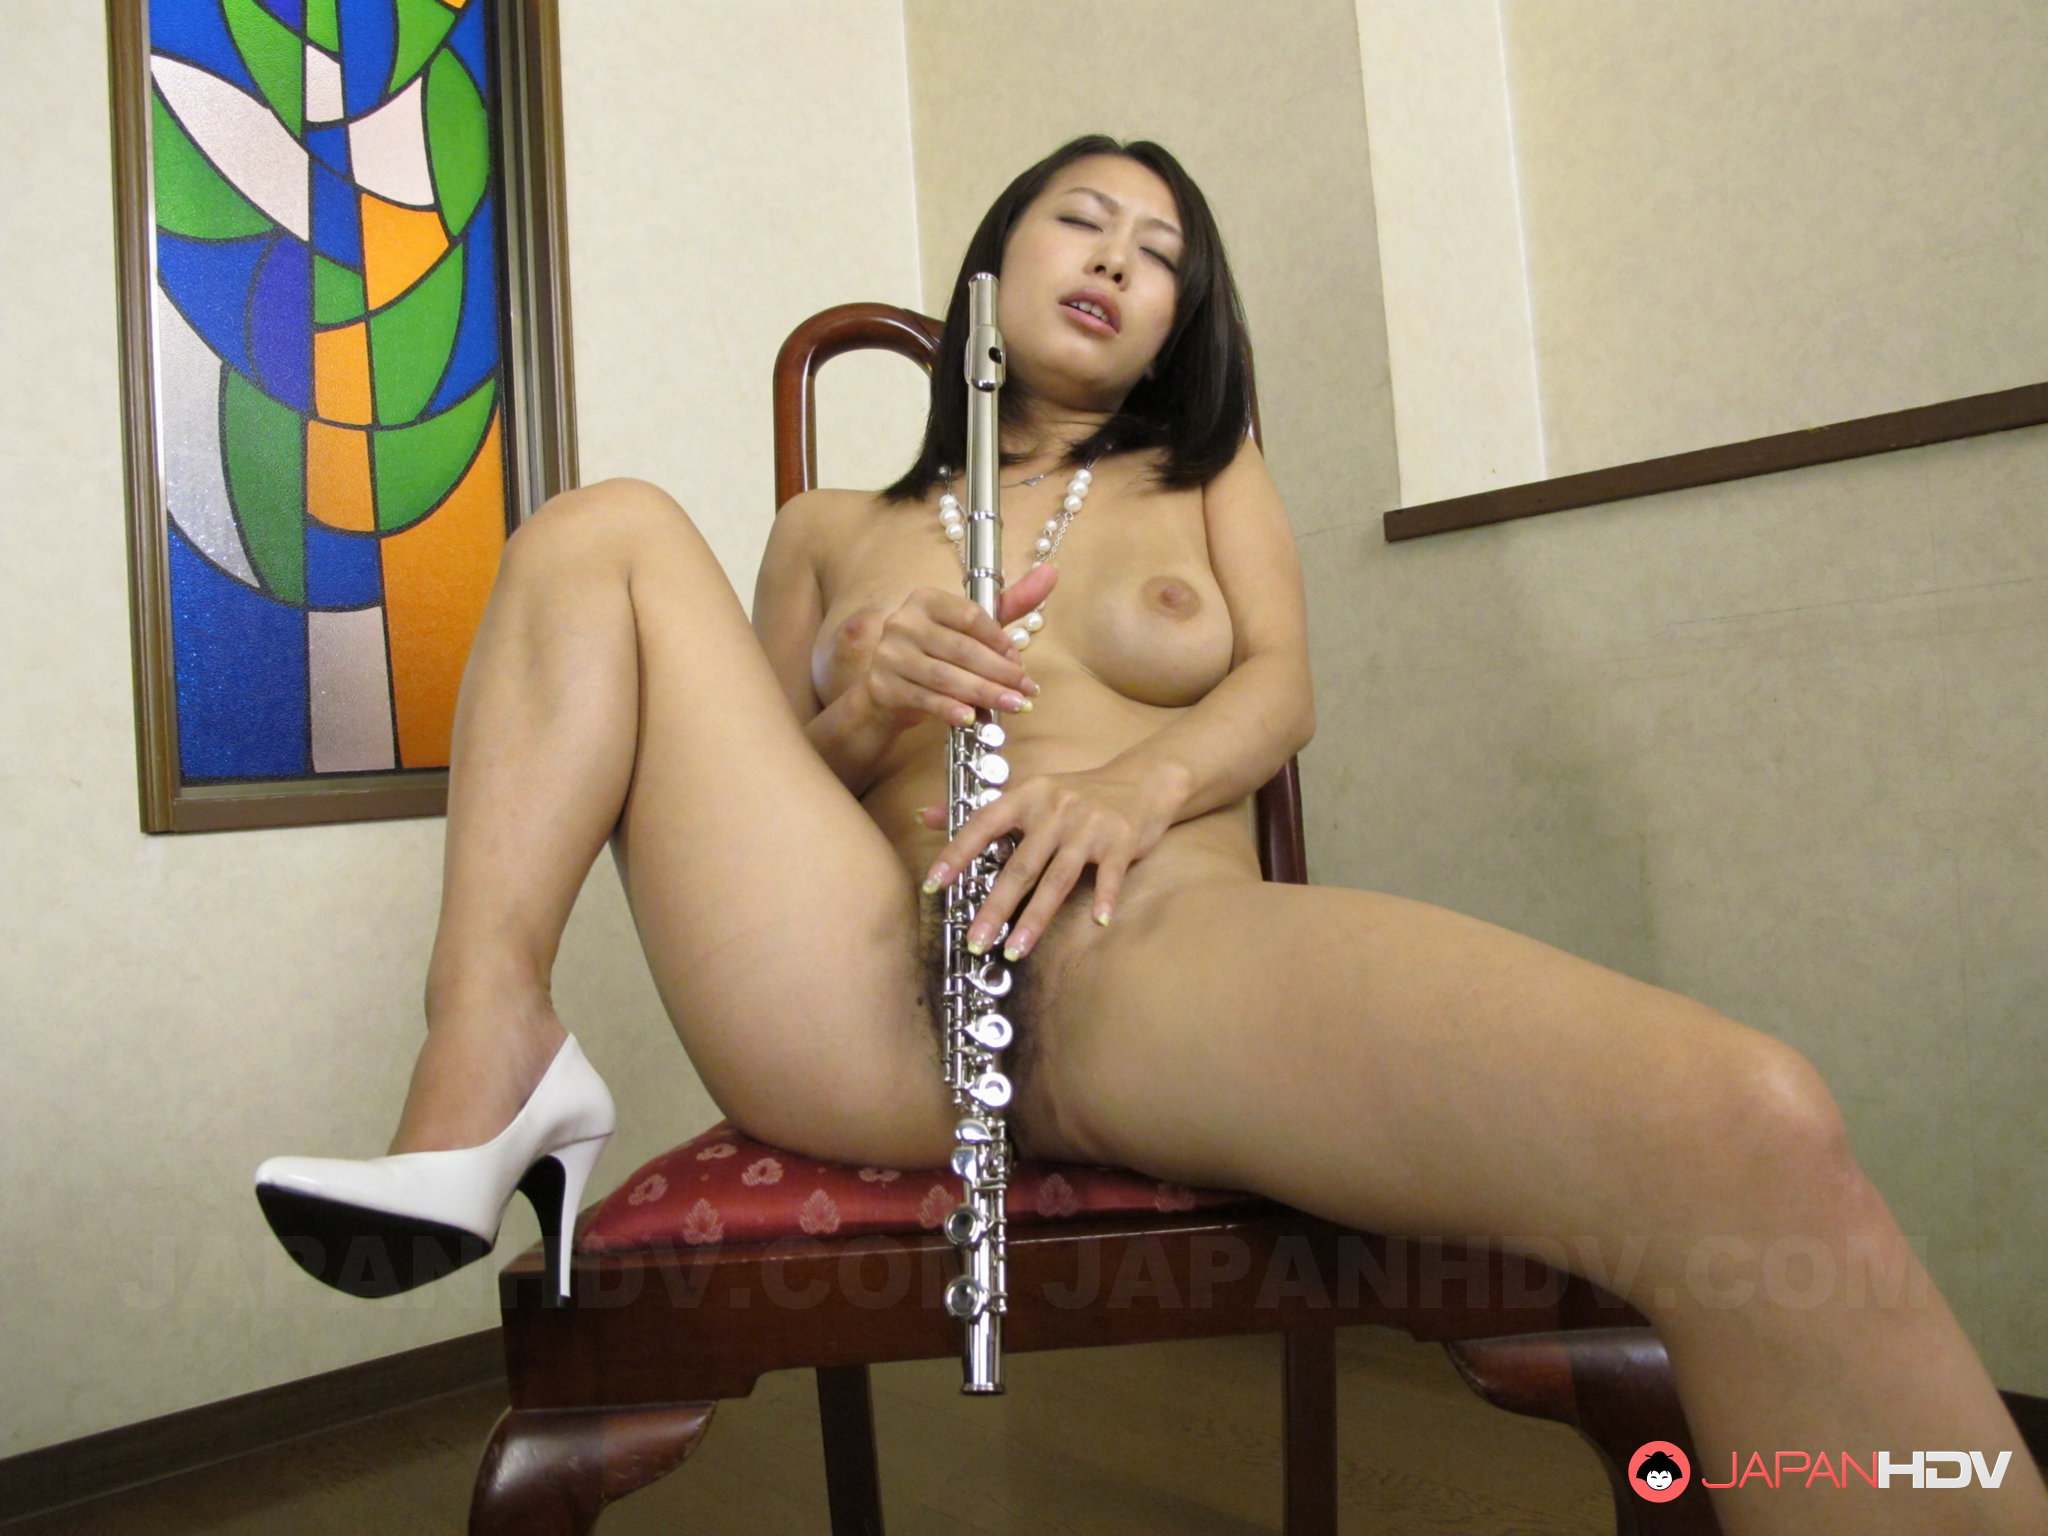 Interesting phrase Naked girls with flute opinion, interesting